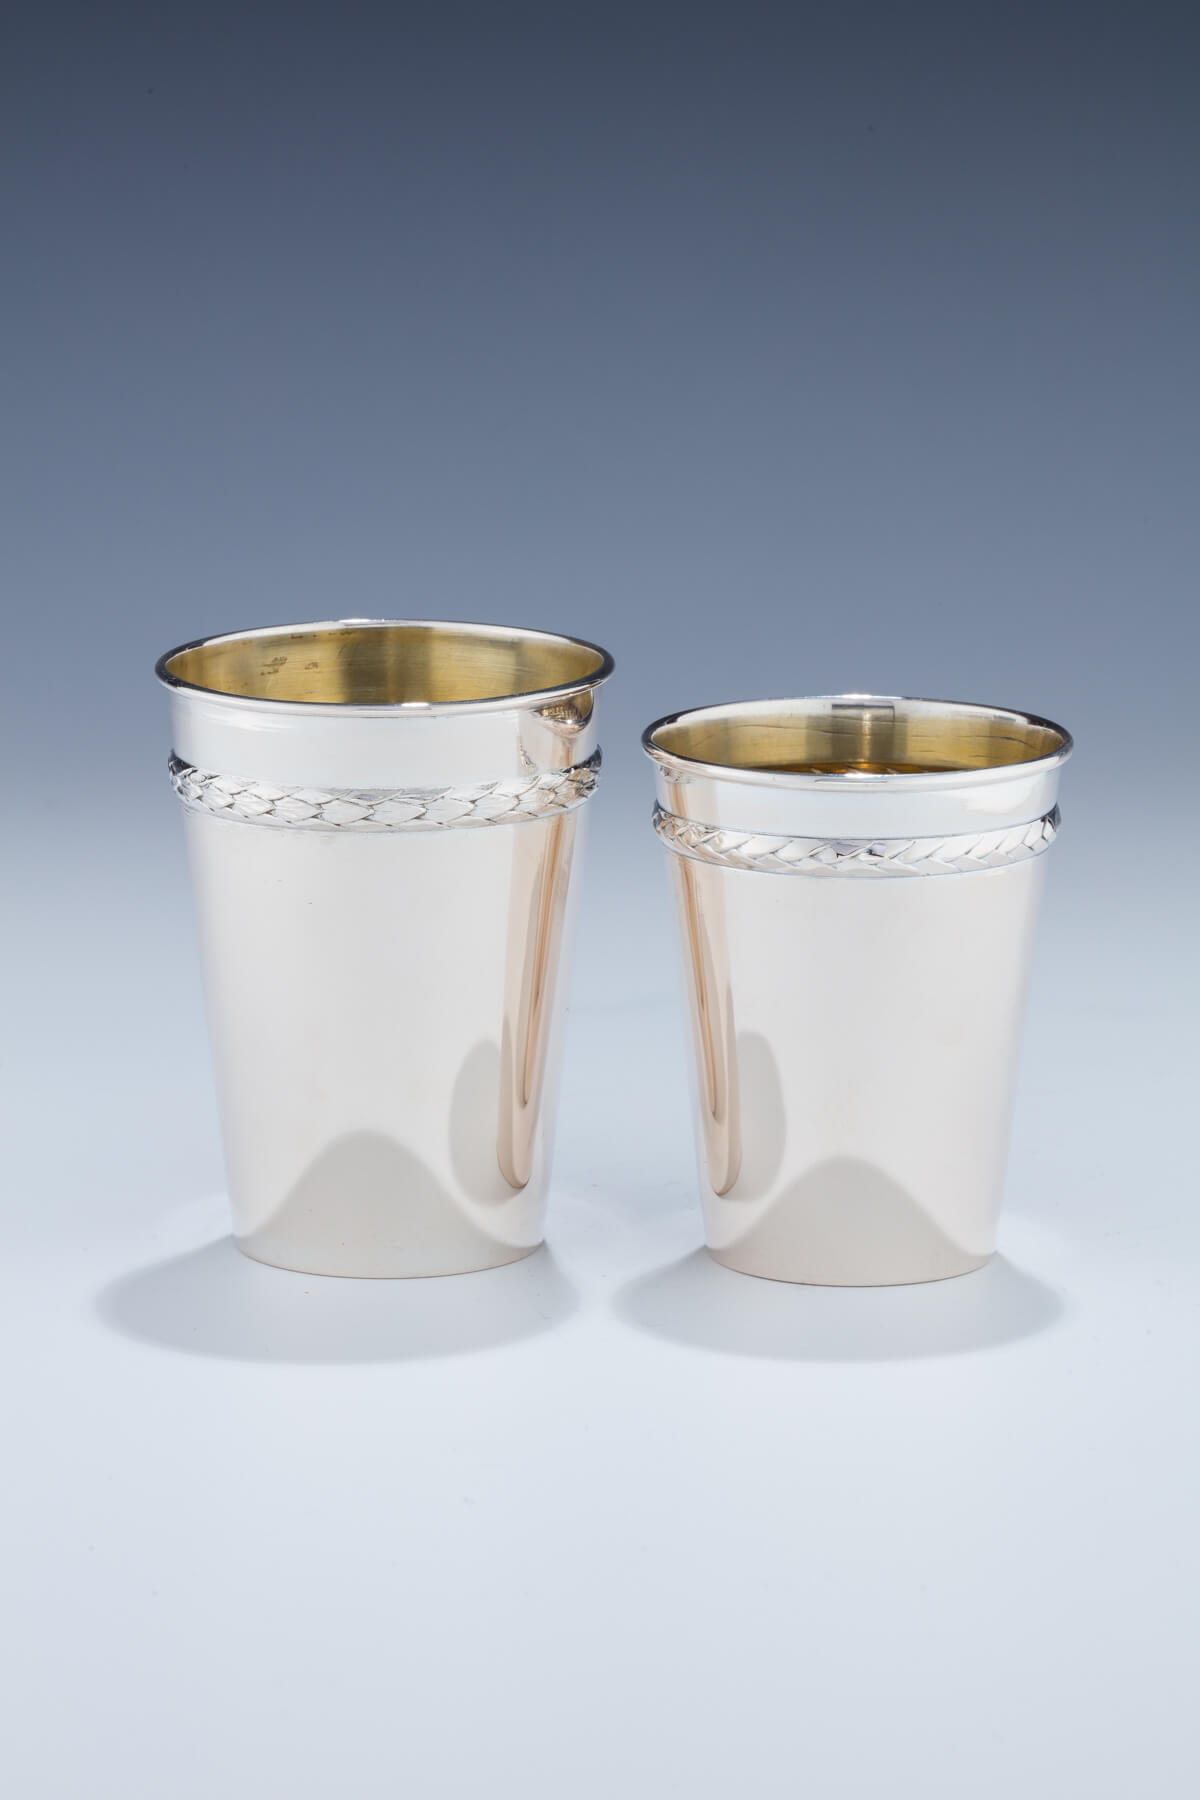 092. A Pair of Silver Kiddush Beakers by Lazarus Posen